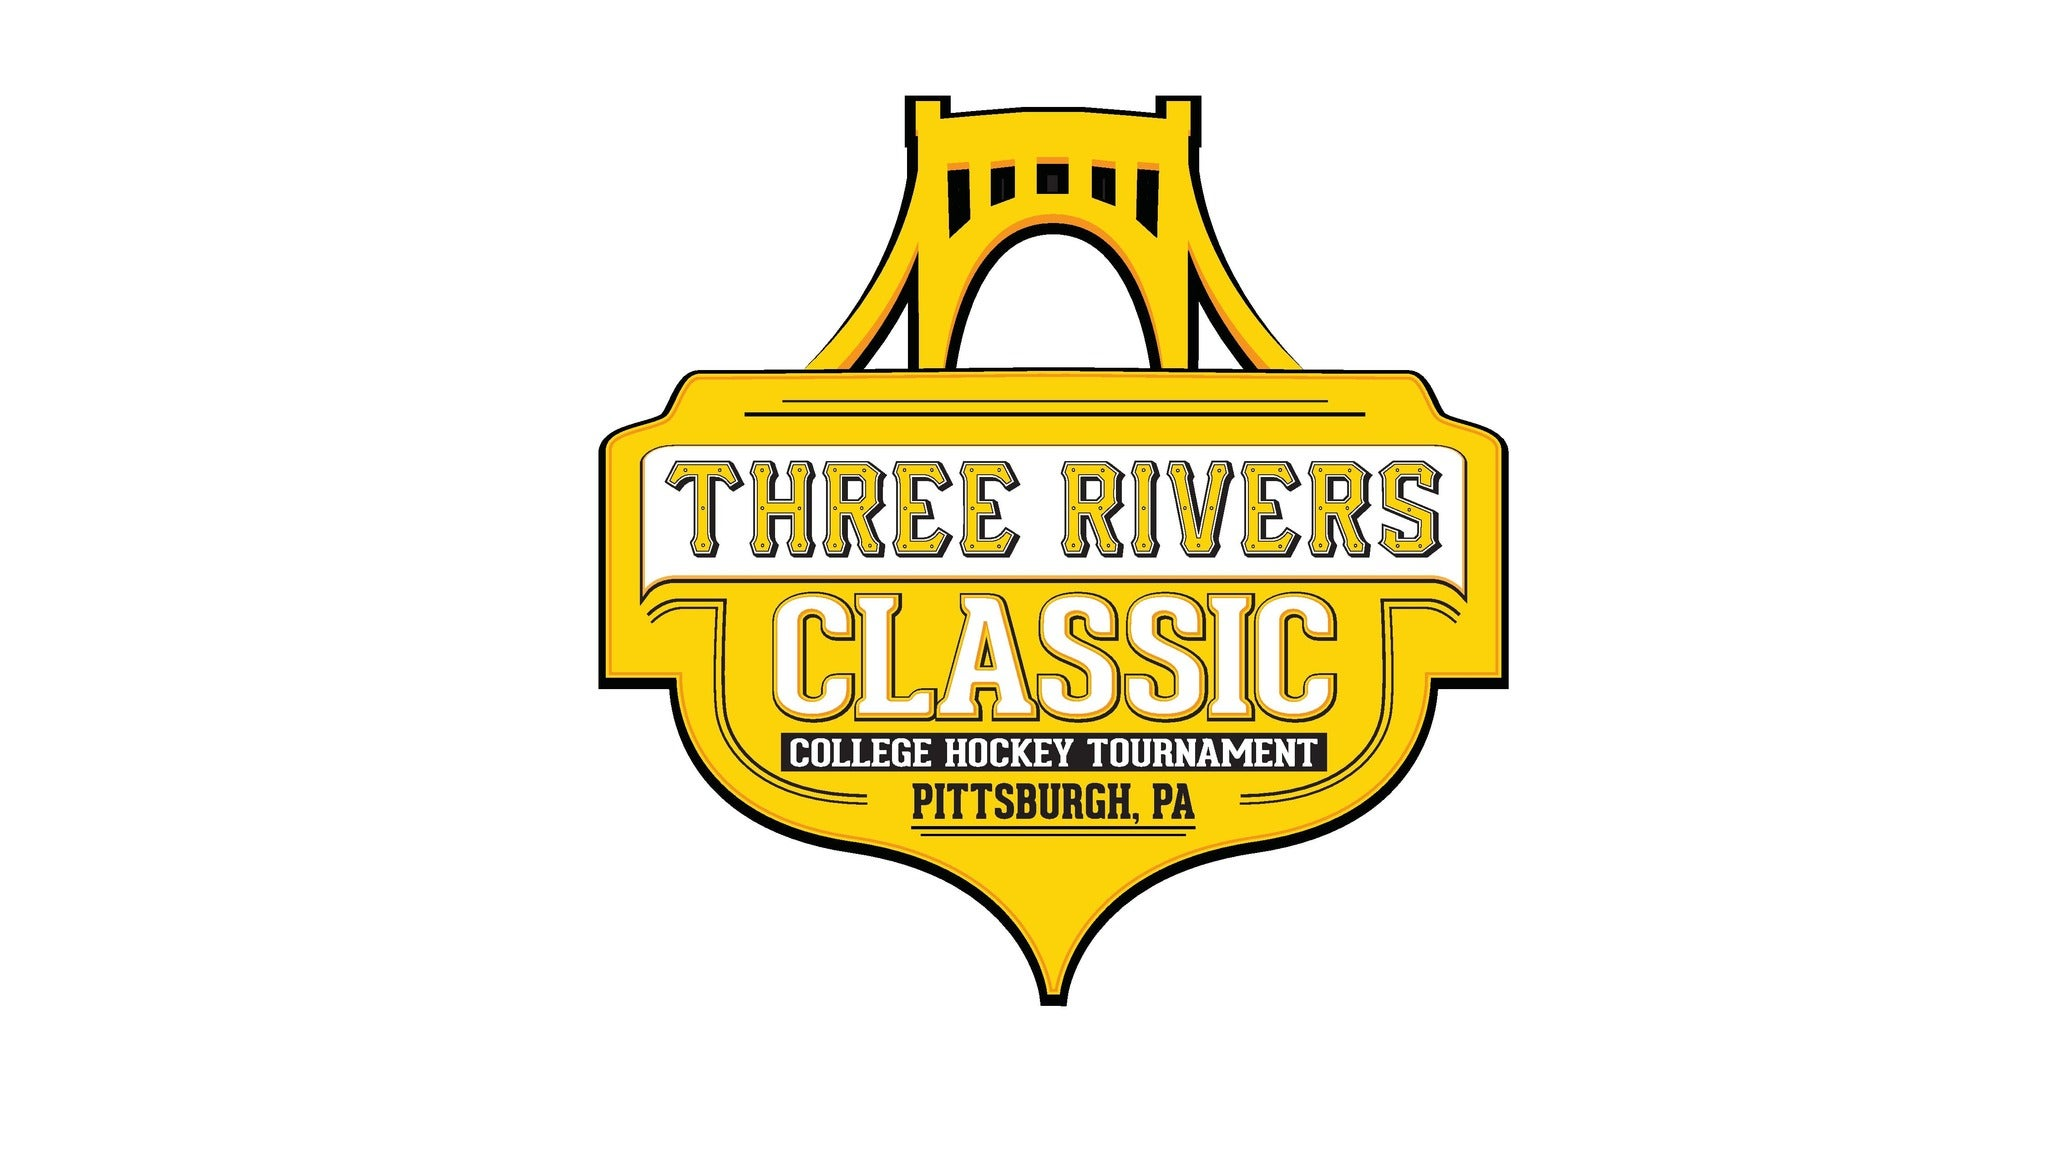 Three Rivers Classic - Day 2 at Webster Bank Arena